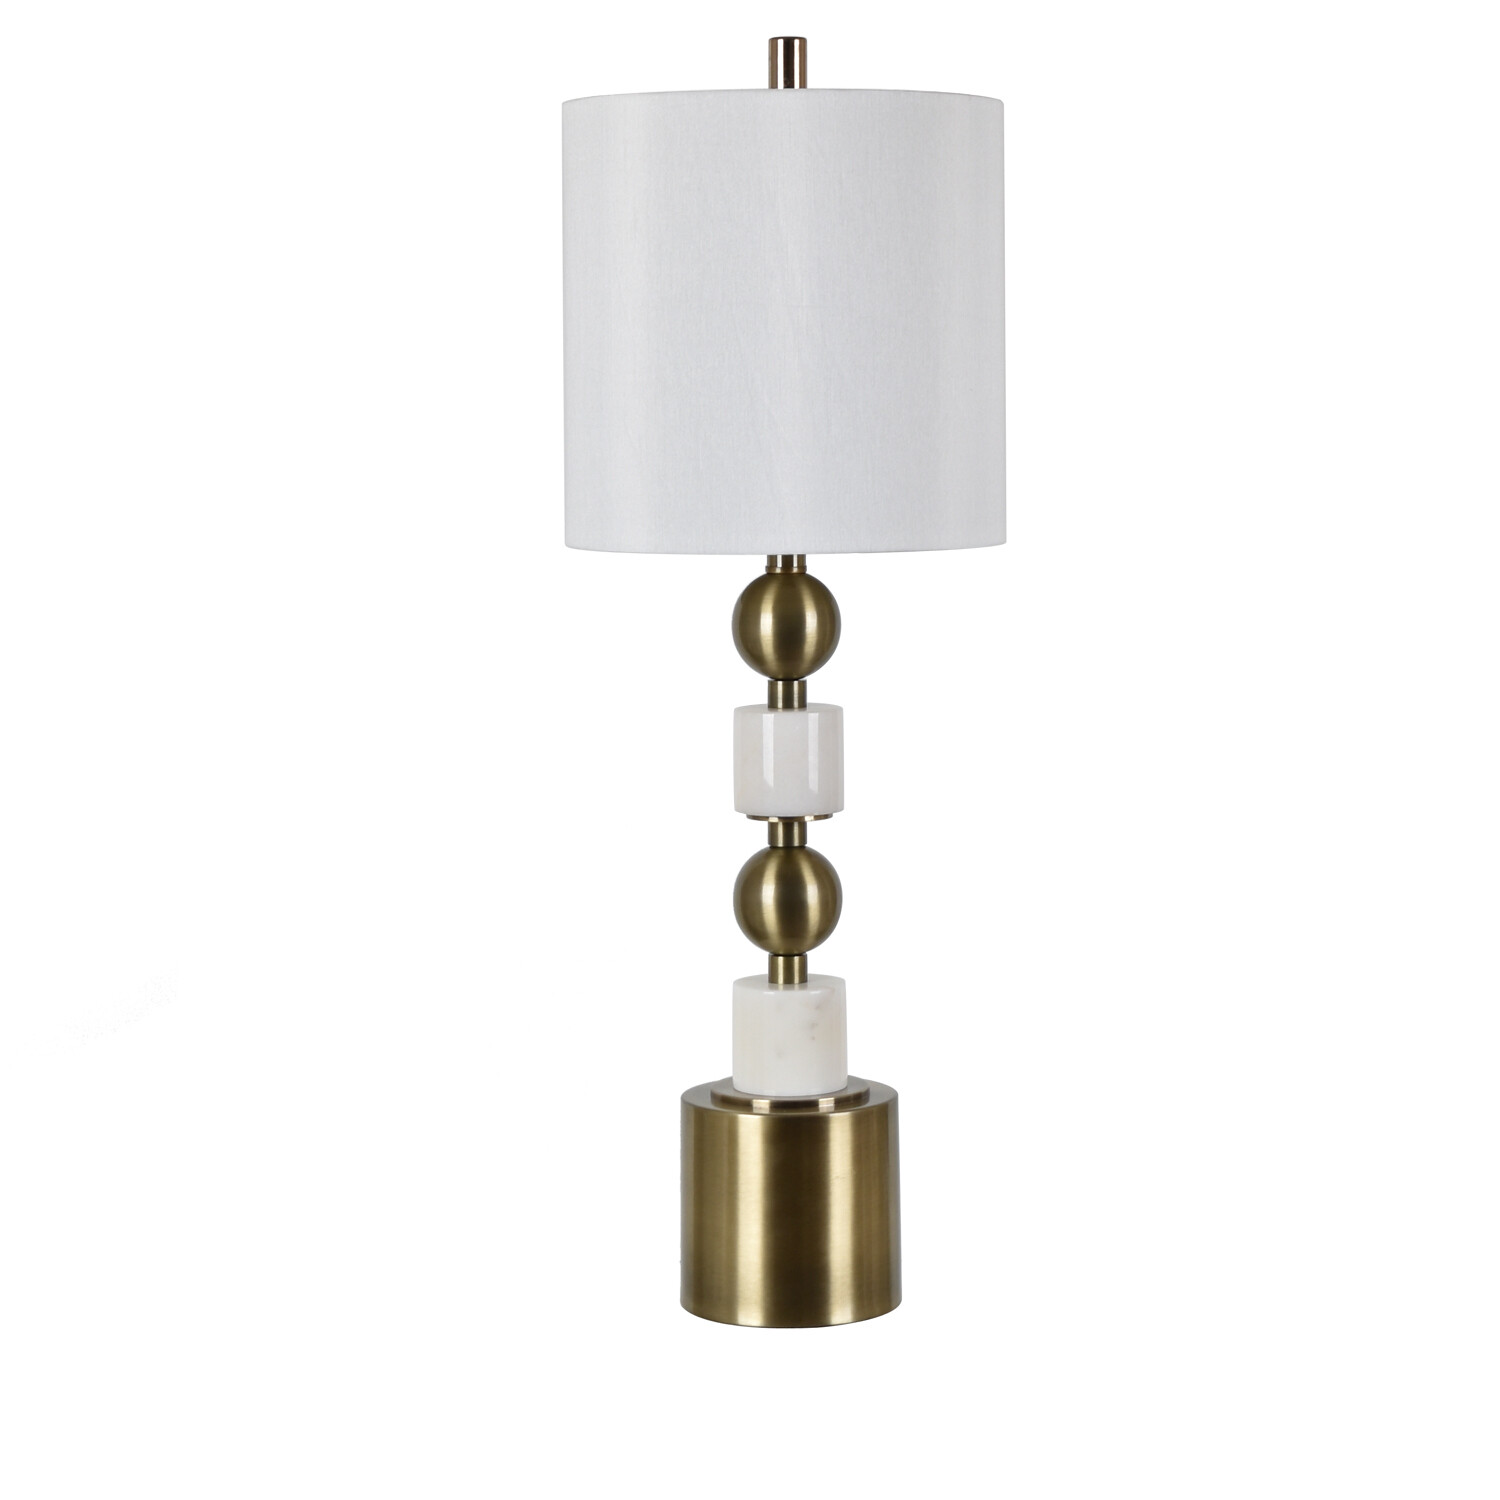 Marble and Metal Table Lamp